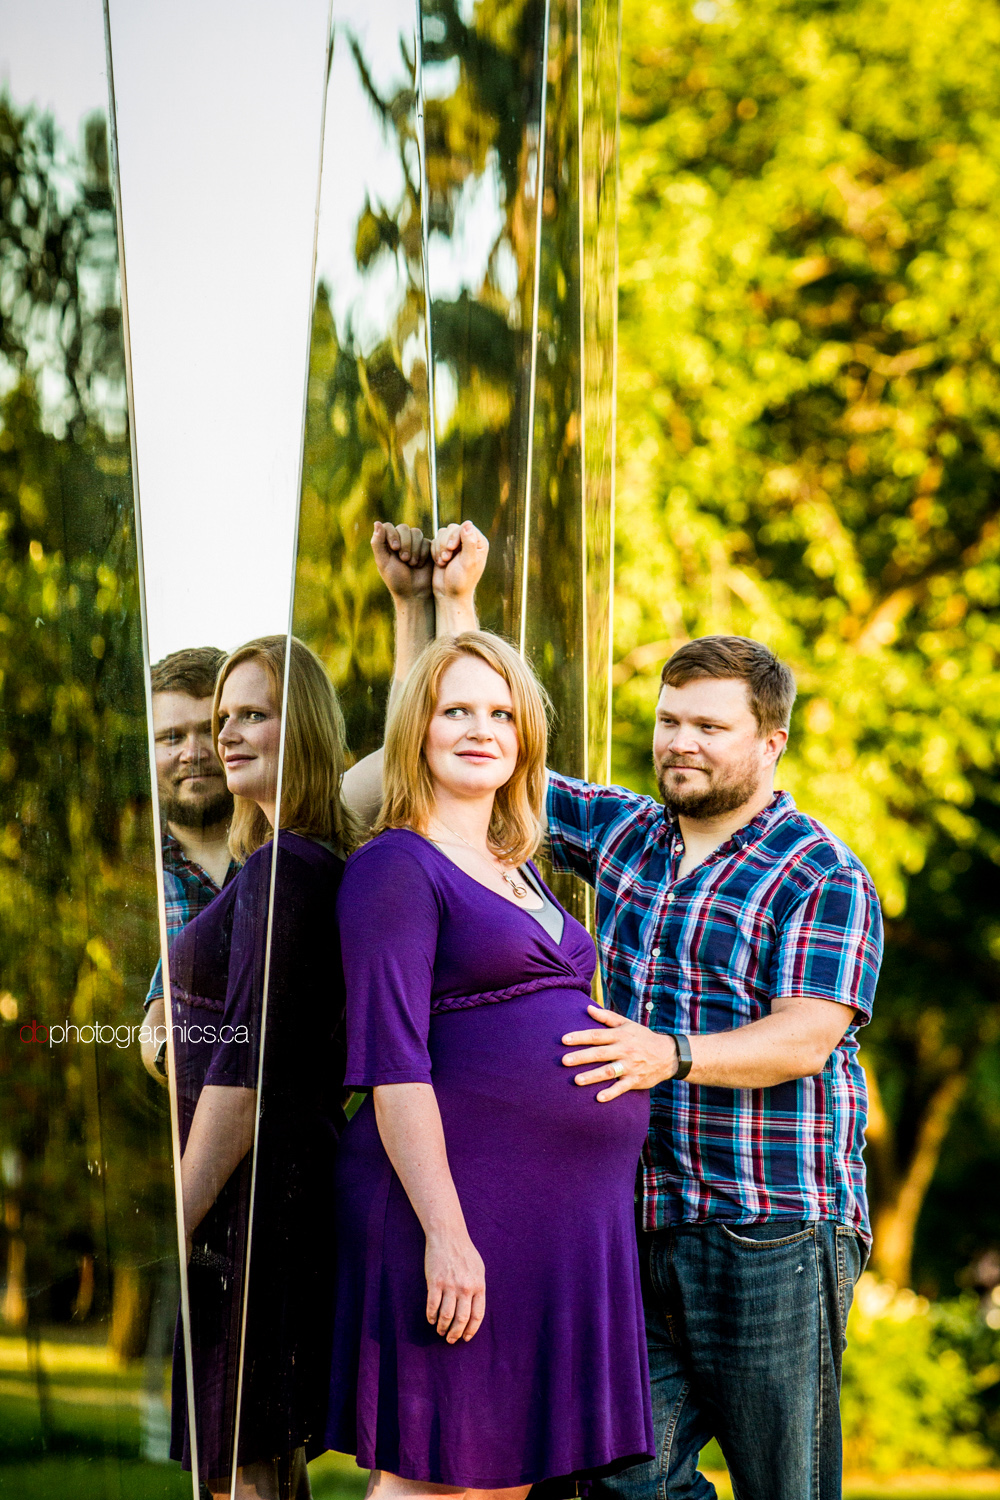 Elisabeth & Trent - Maternity Session - 20140707 - 0054.jpg